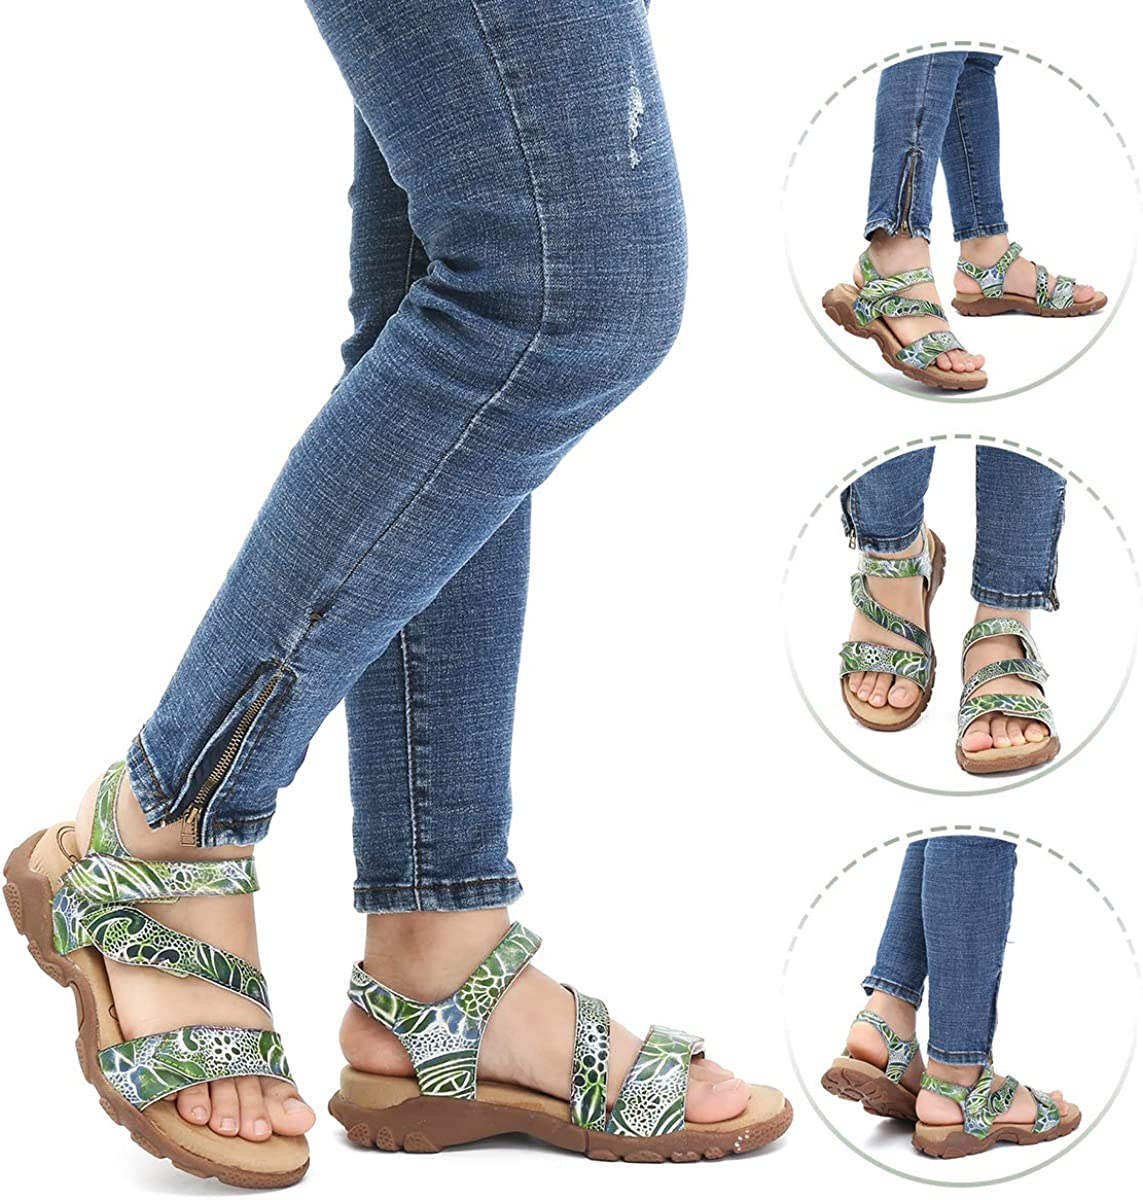 Camfosy Women Summer Flat Sandals Leather Sports Outdoor Anti Slip Walking Sandals Vintage Handmade Slip Ons